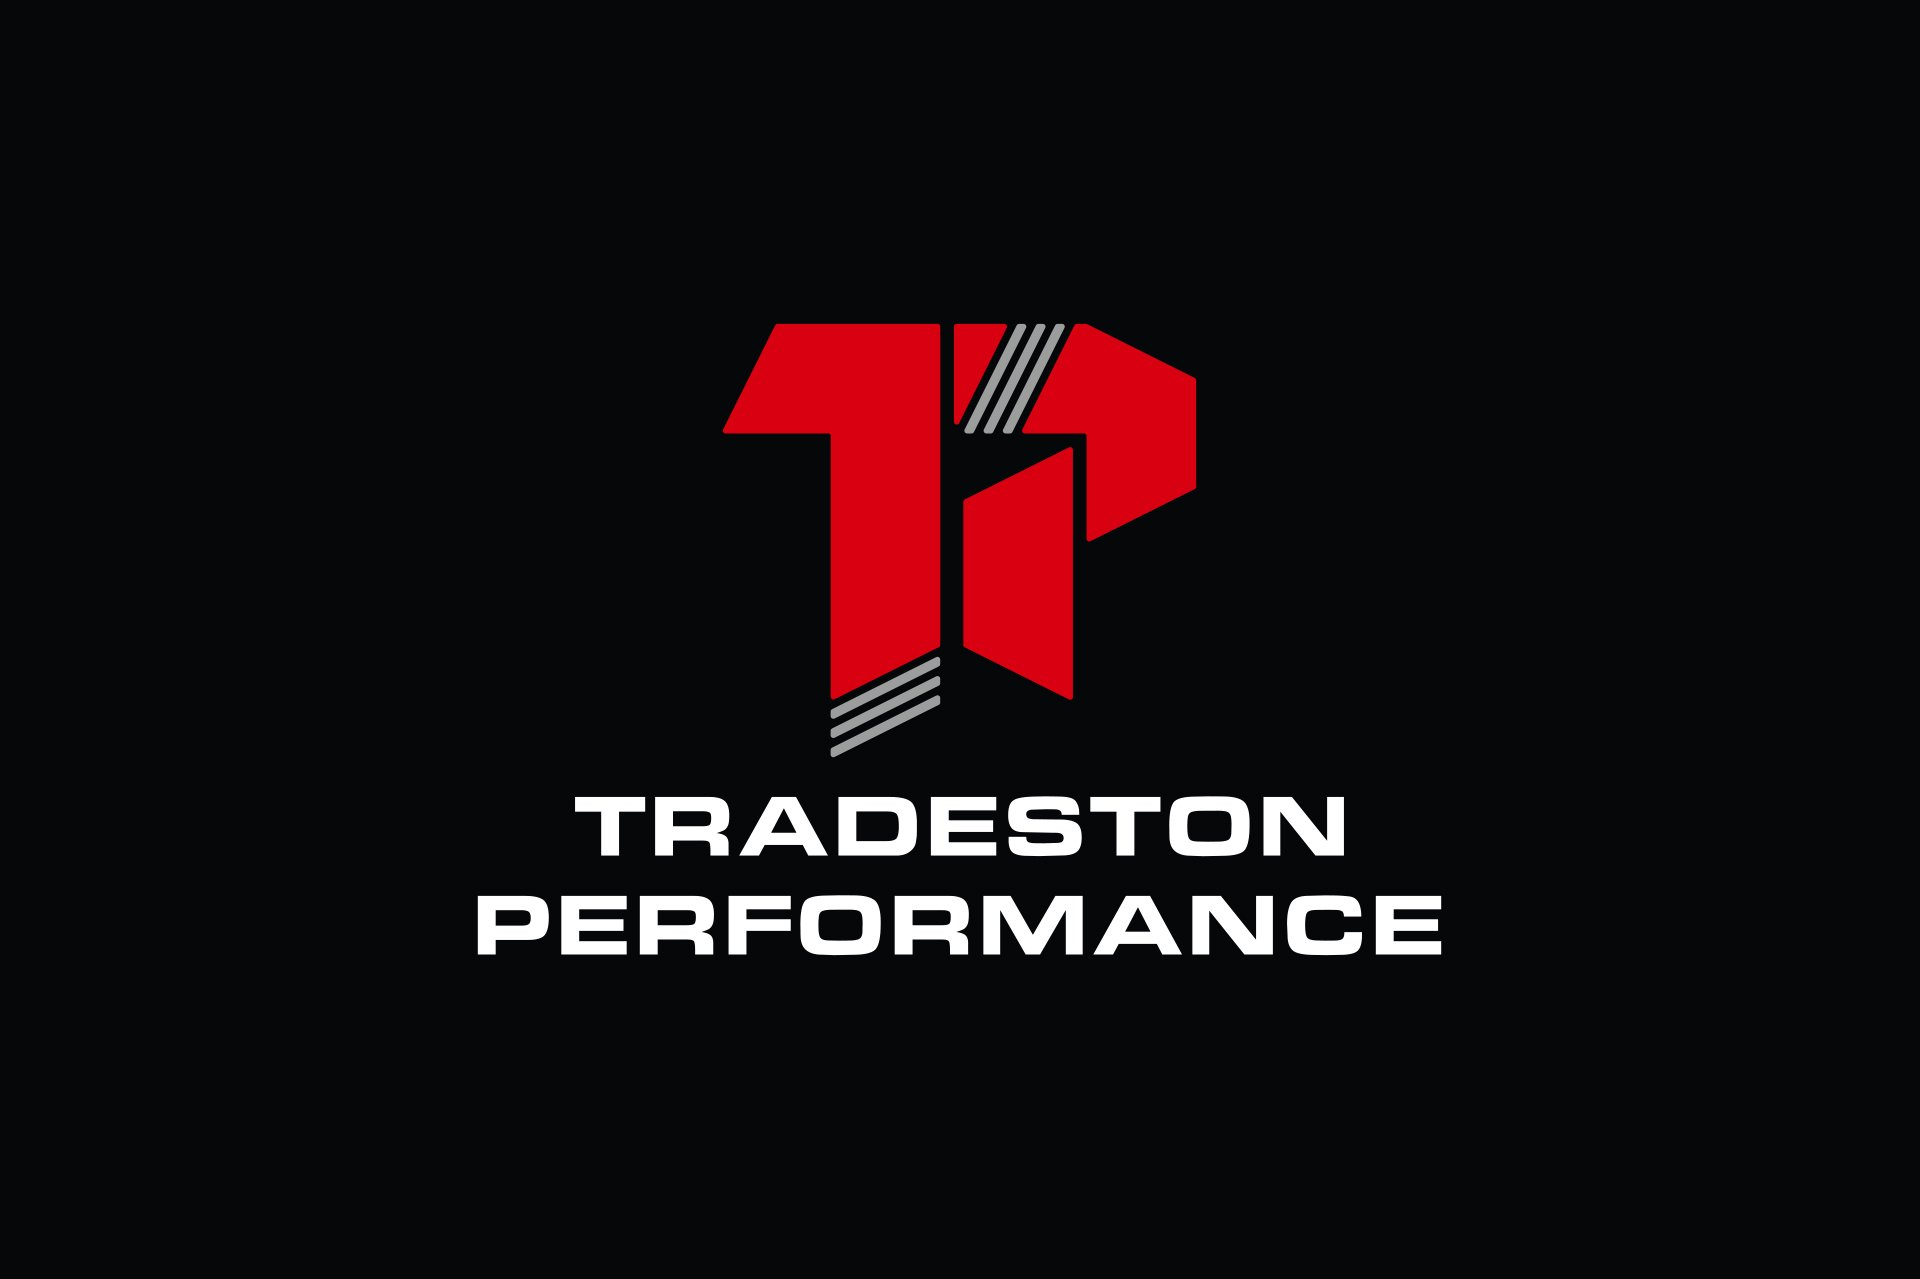 Tradeston Performance Logo, Glasgow